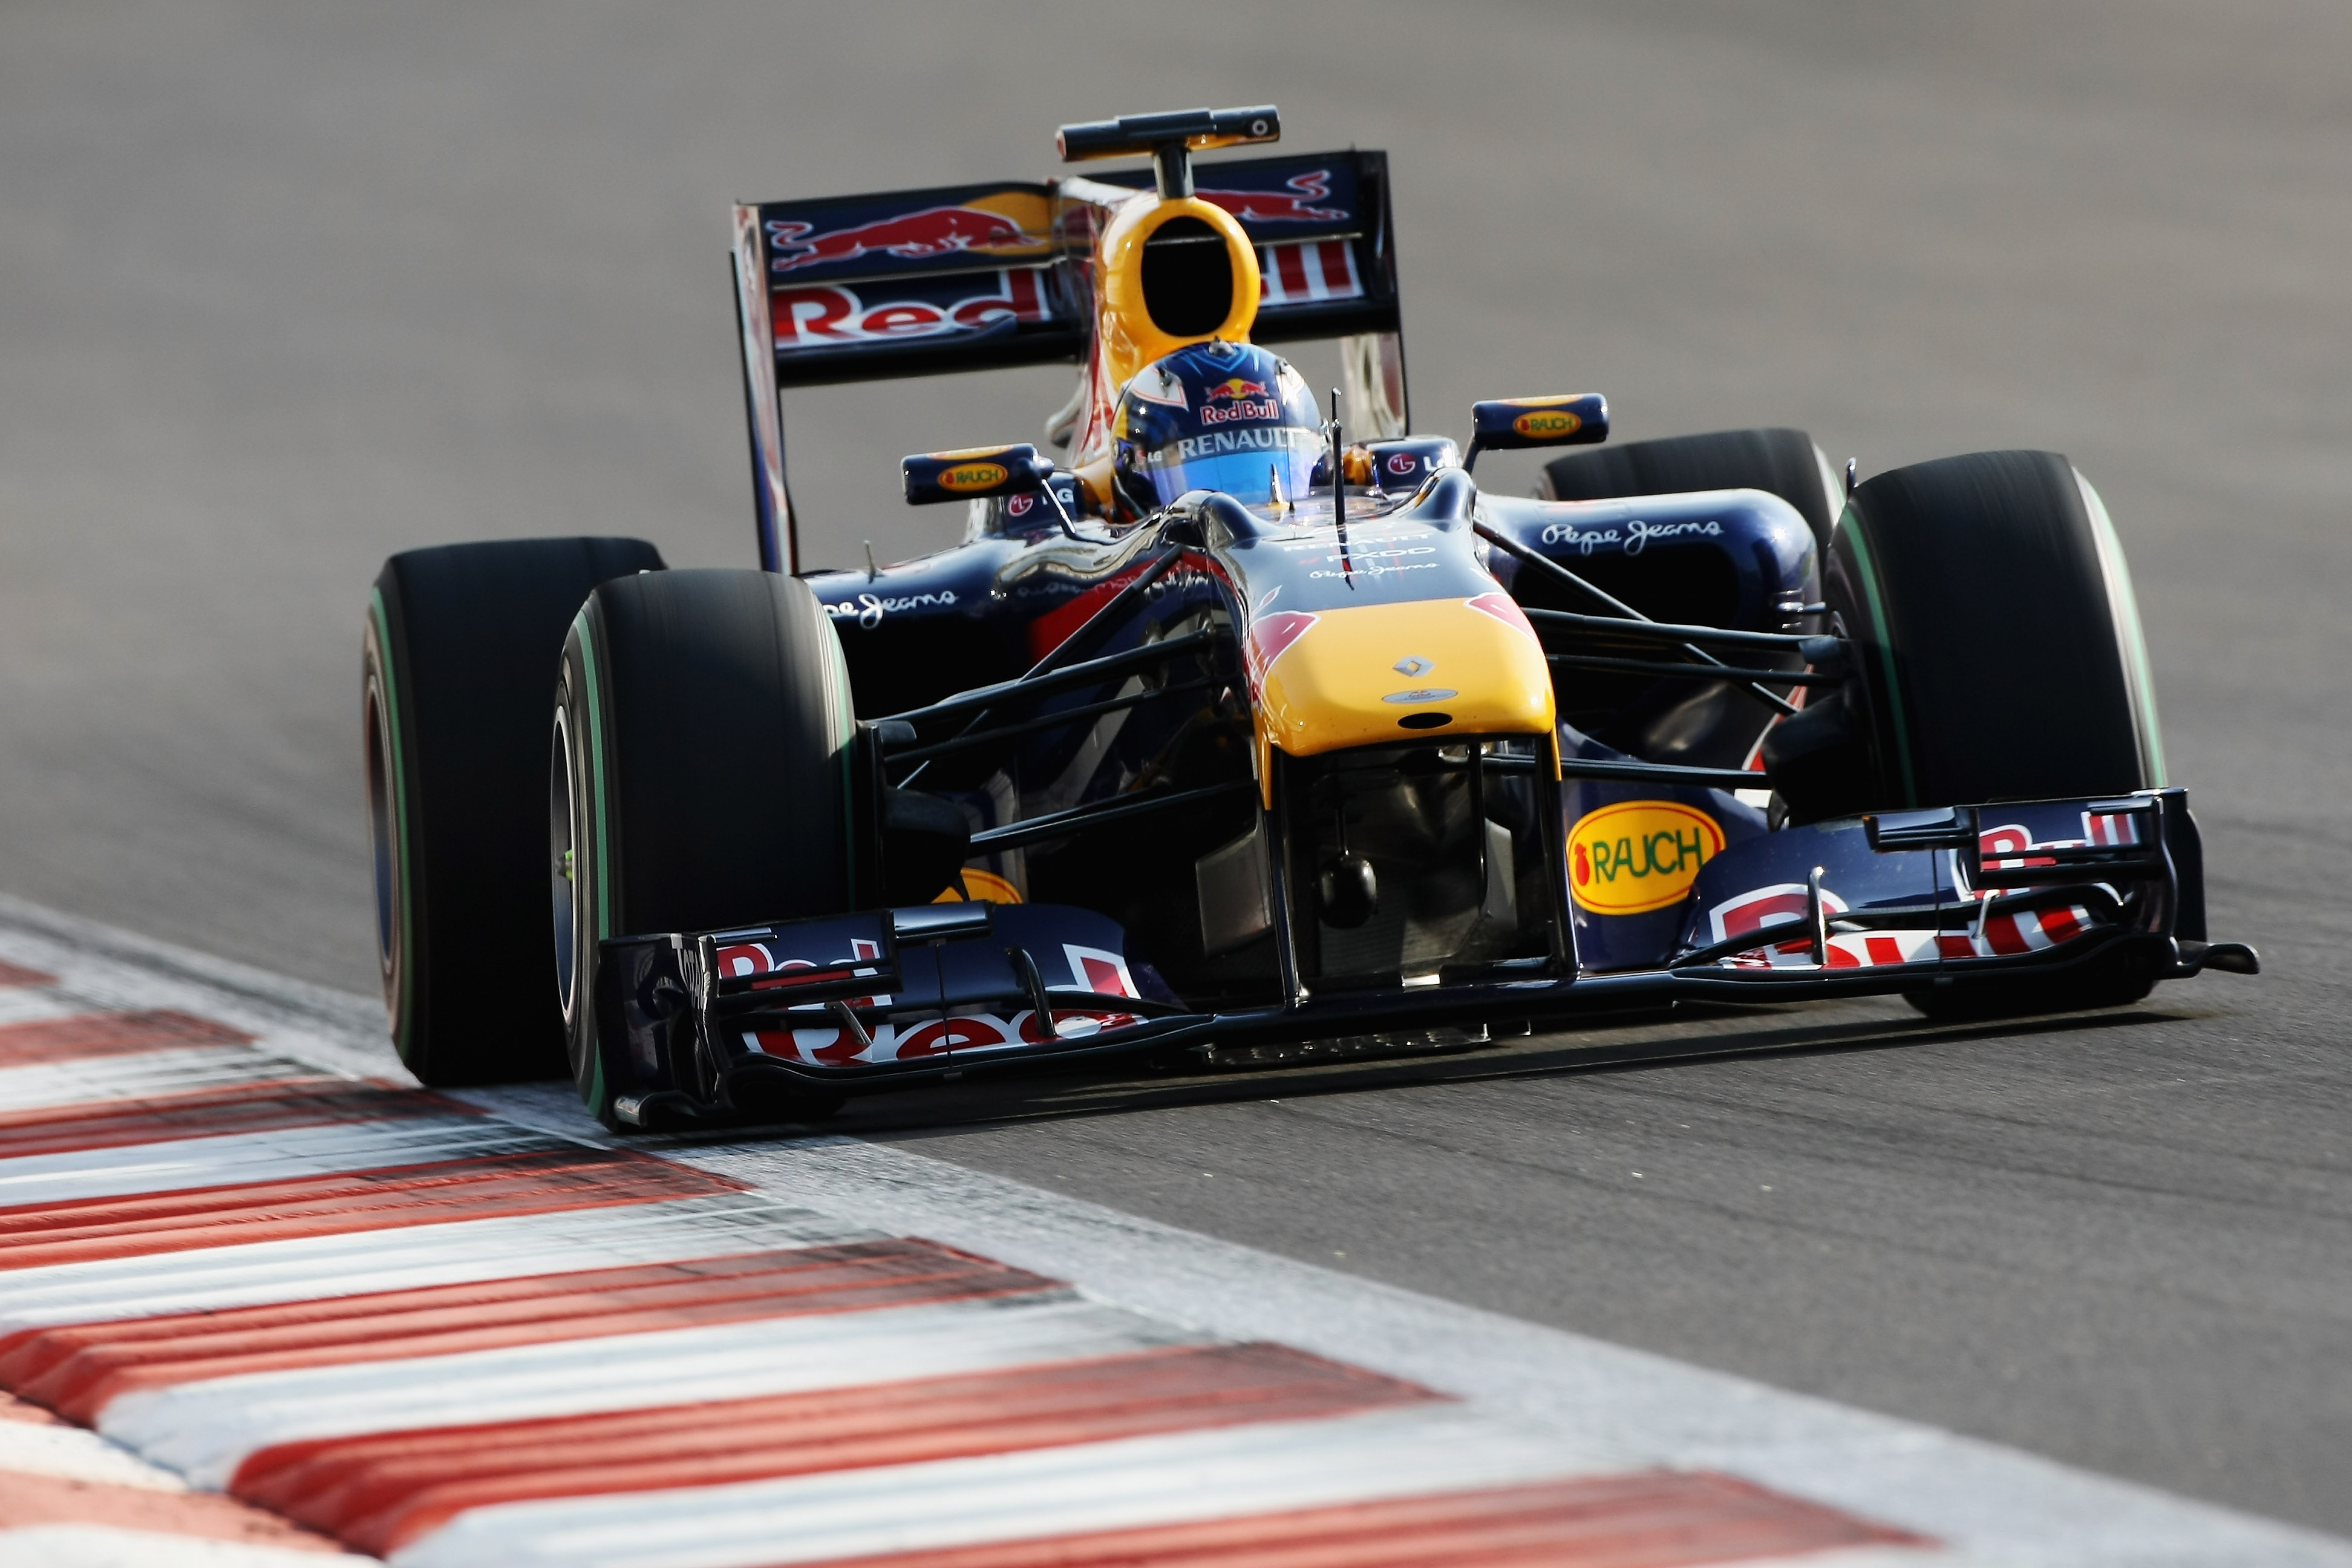 ABU DHABI, UNITED ARAB EMIRATES - NOVEMBER 16: Daniel Ricciardo of Australia and Red Bull Racing in action during the Young Driver Testing at the Yas Marina Circuit on November 16, 2010 in Abu Dhabi, United Arab Emirates. (Photo by Andrew Hone/Getty Image